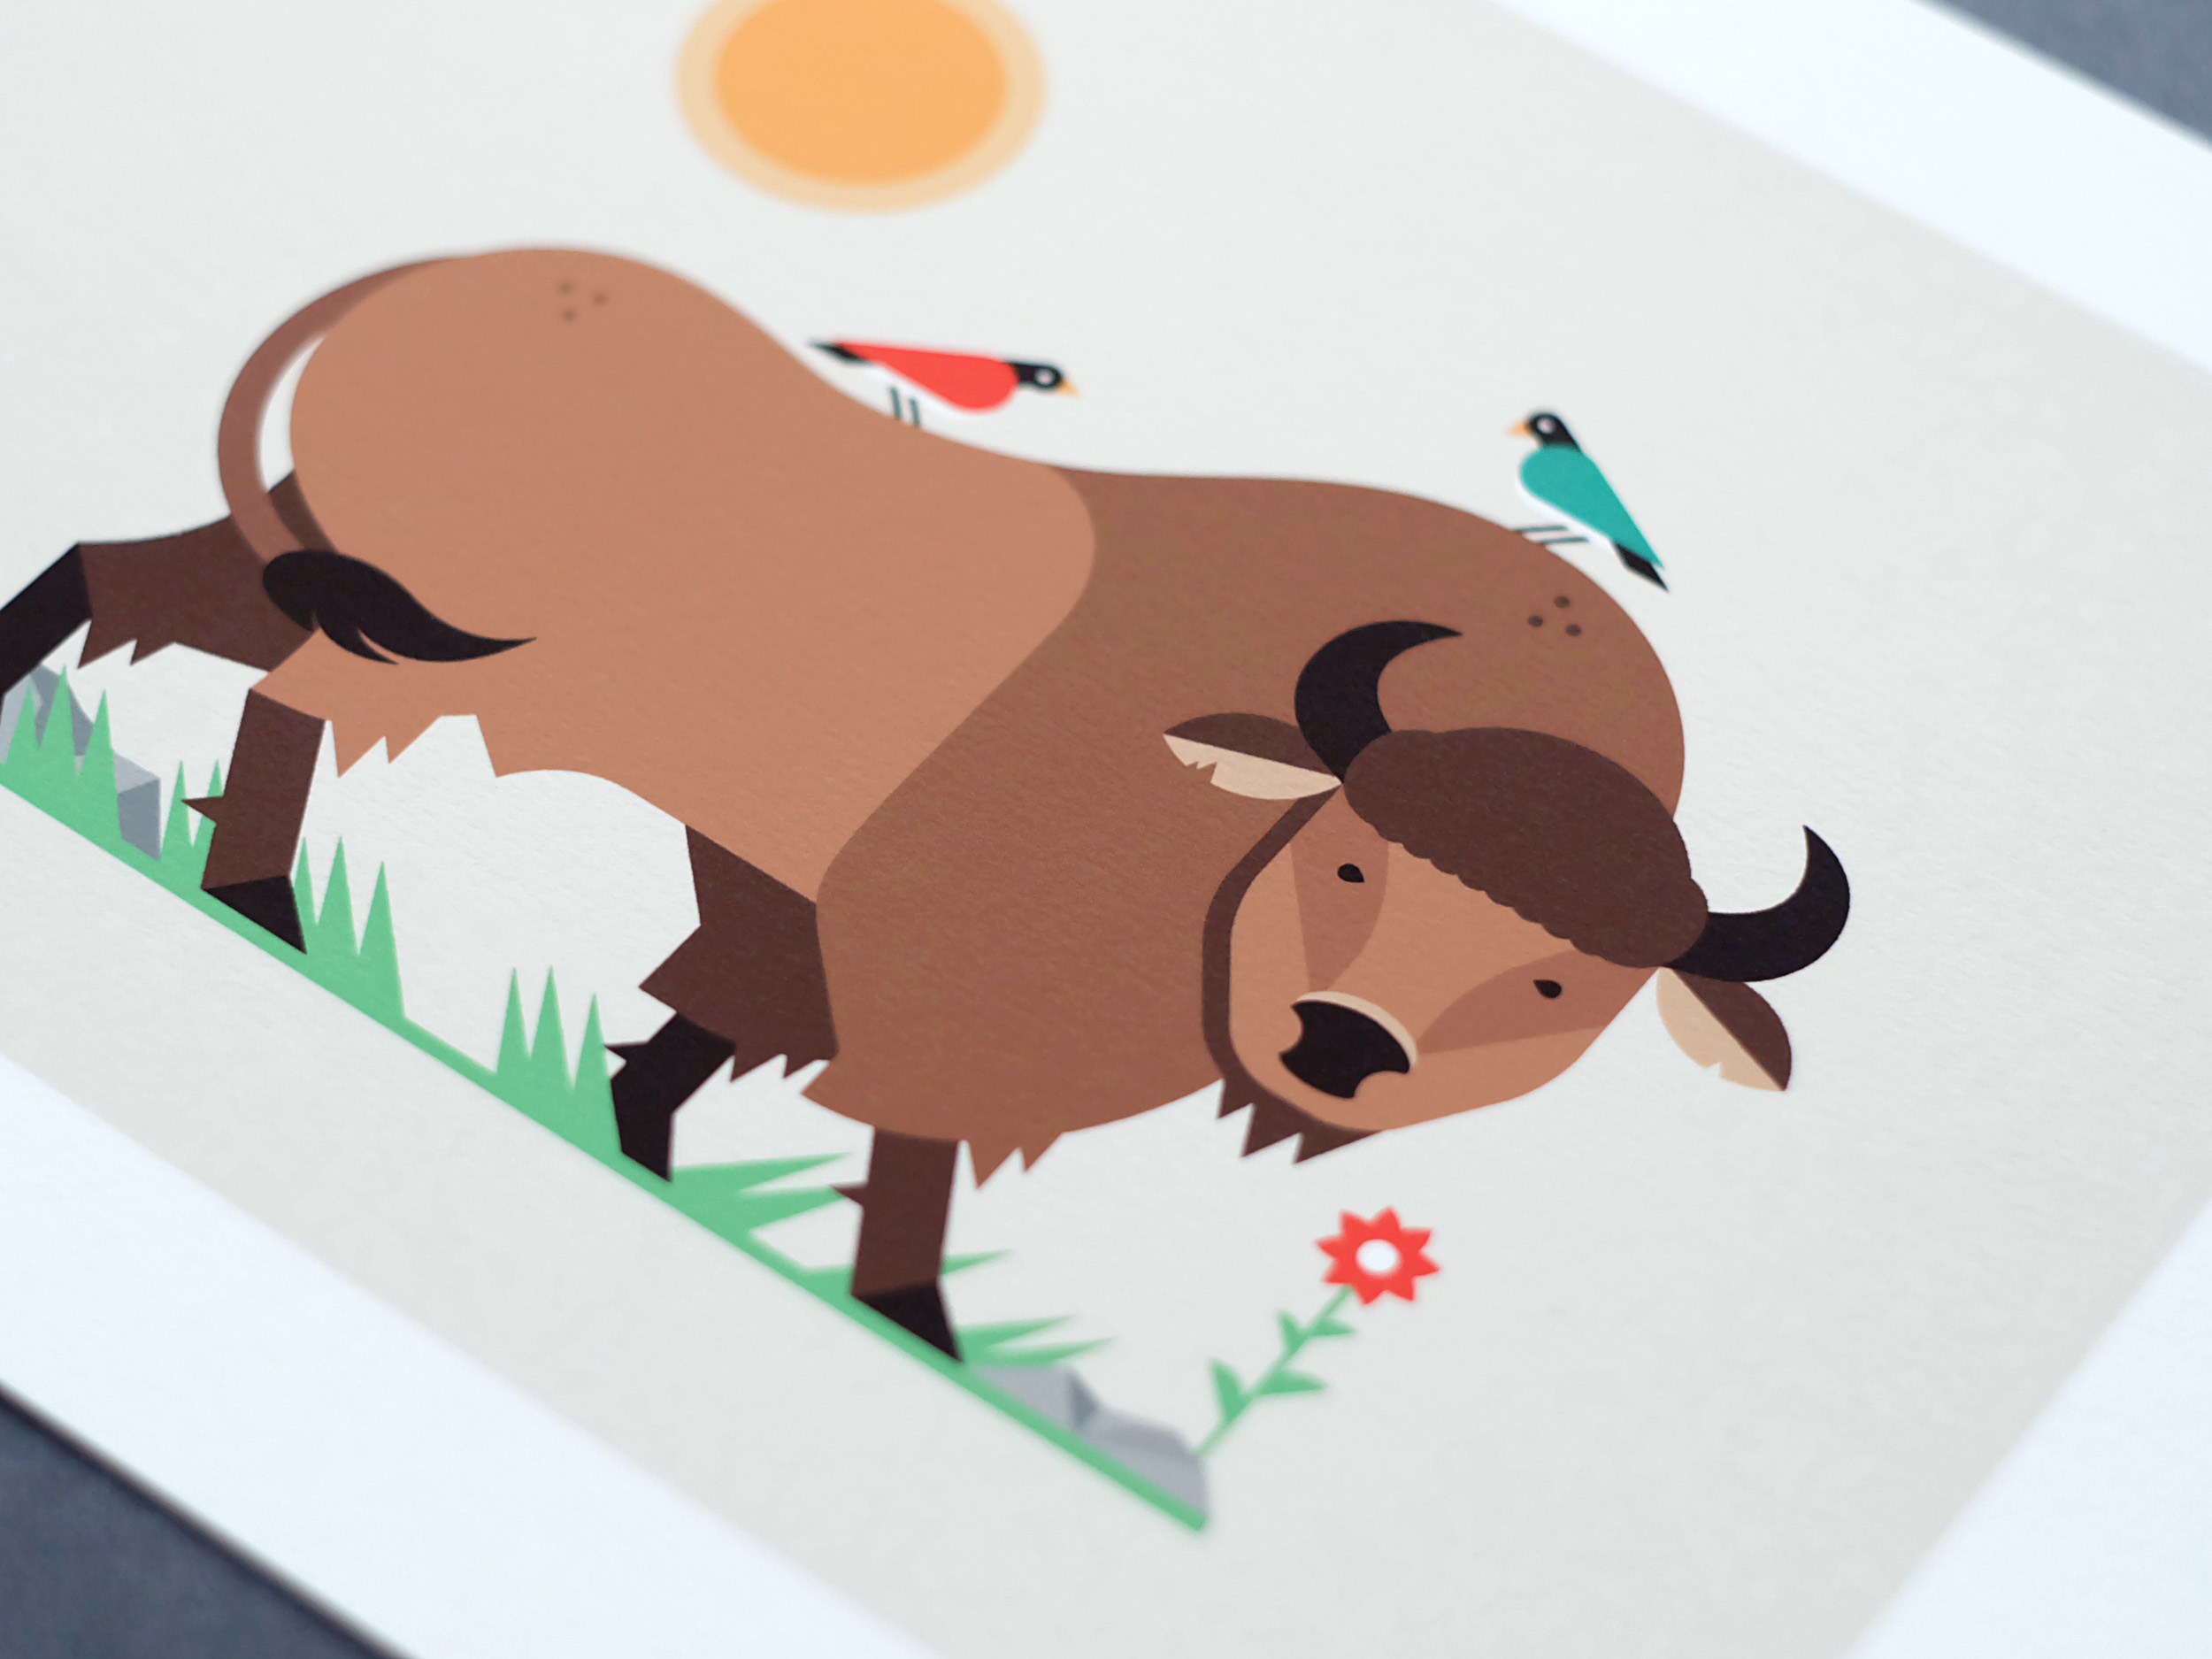 Buffalo Illustration - Print Photo - Art by Matt Anderson